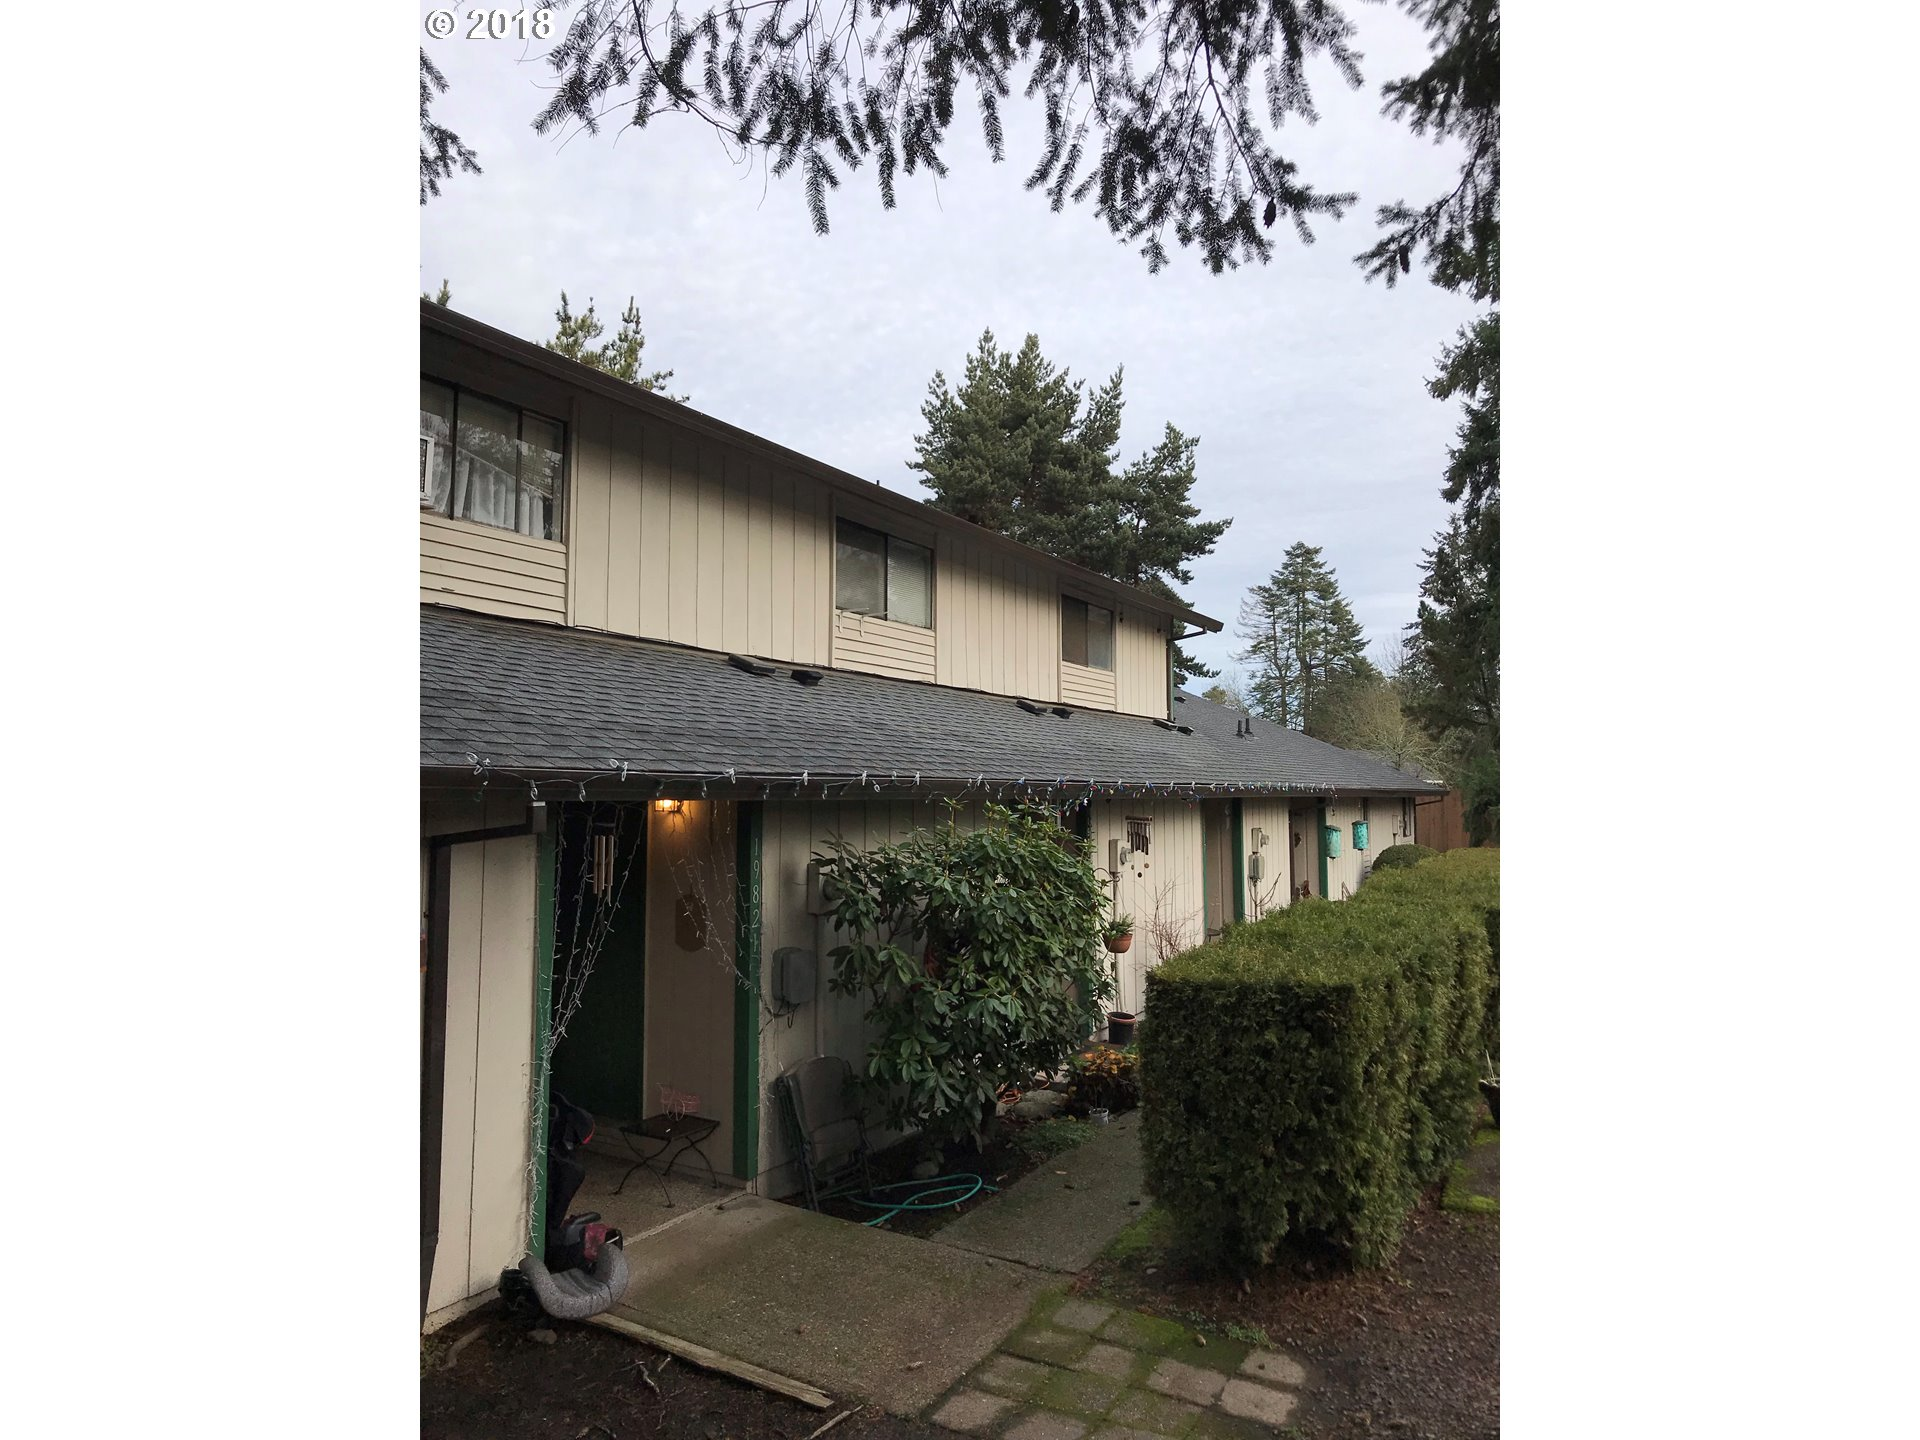 Photo for 19815 NW ROCK CREEK BLVD, Portland, OR 97210 (MLS # 18305334)